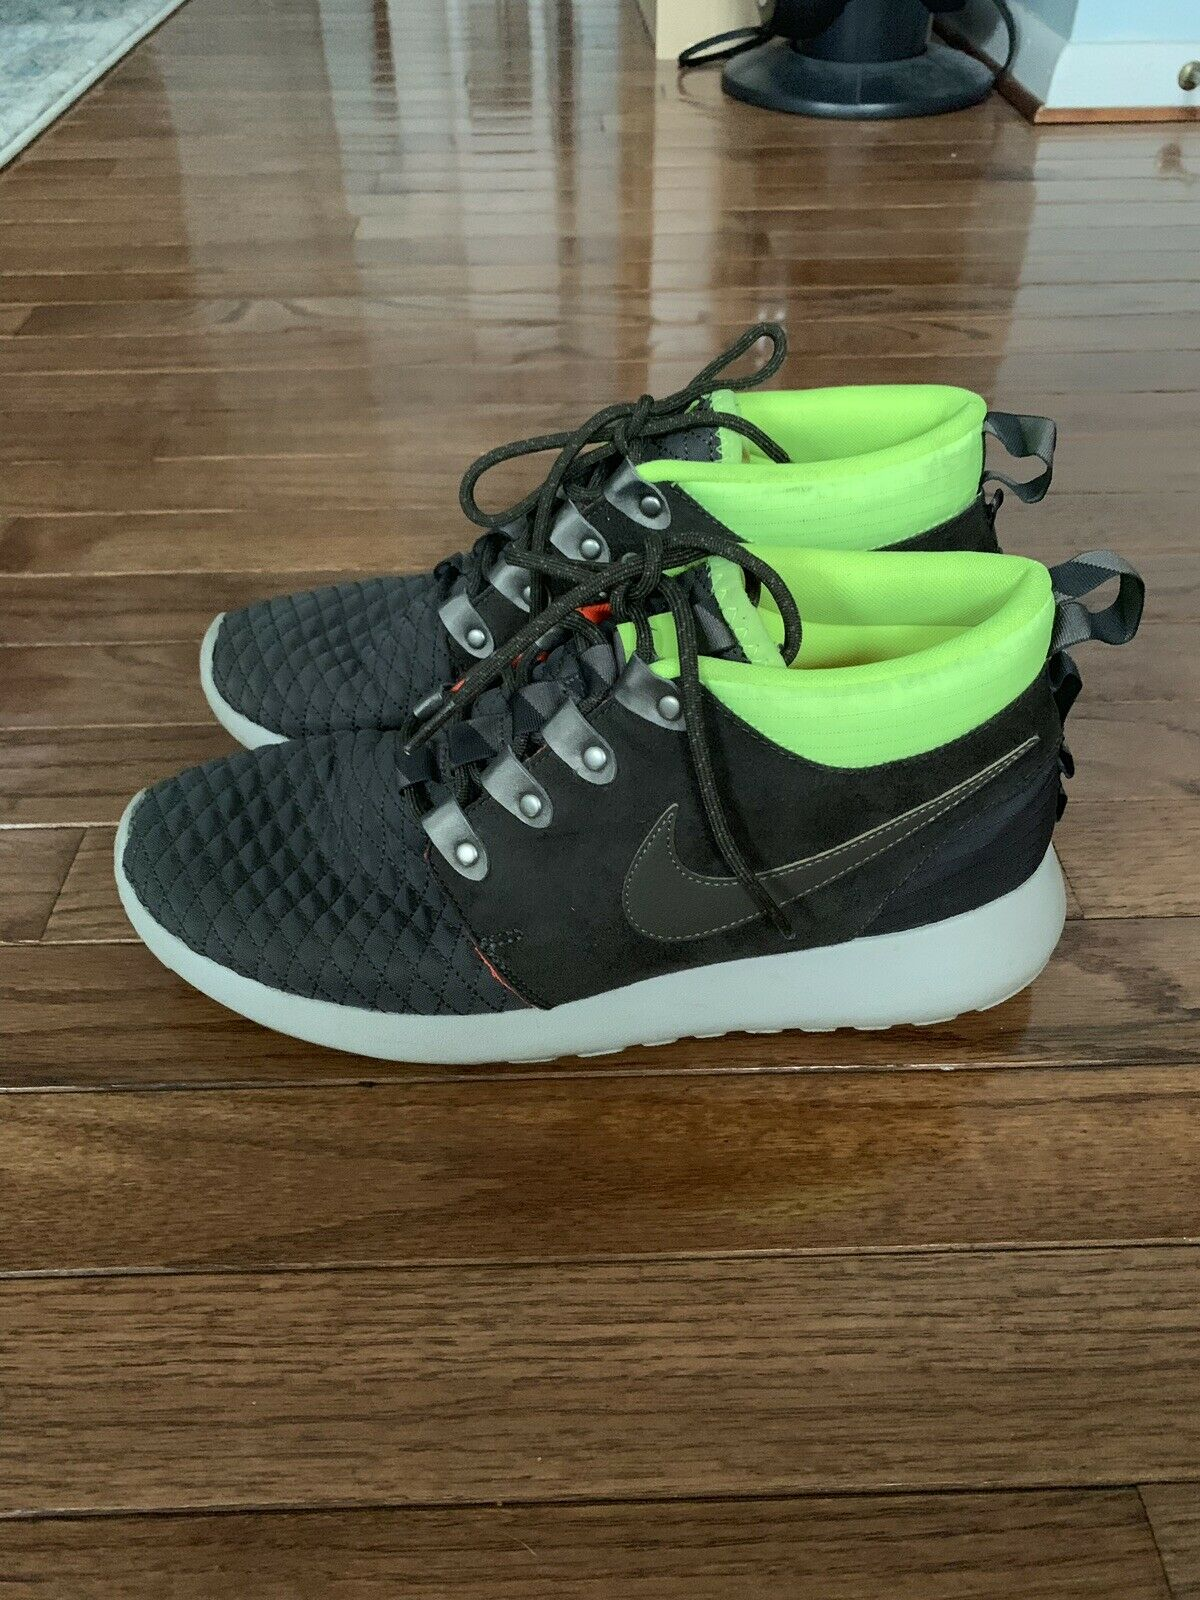 Nike Roshe Run One HighLimited - Moss Green And Volt